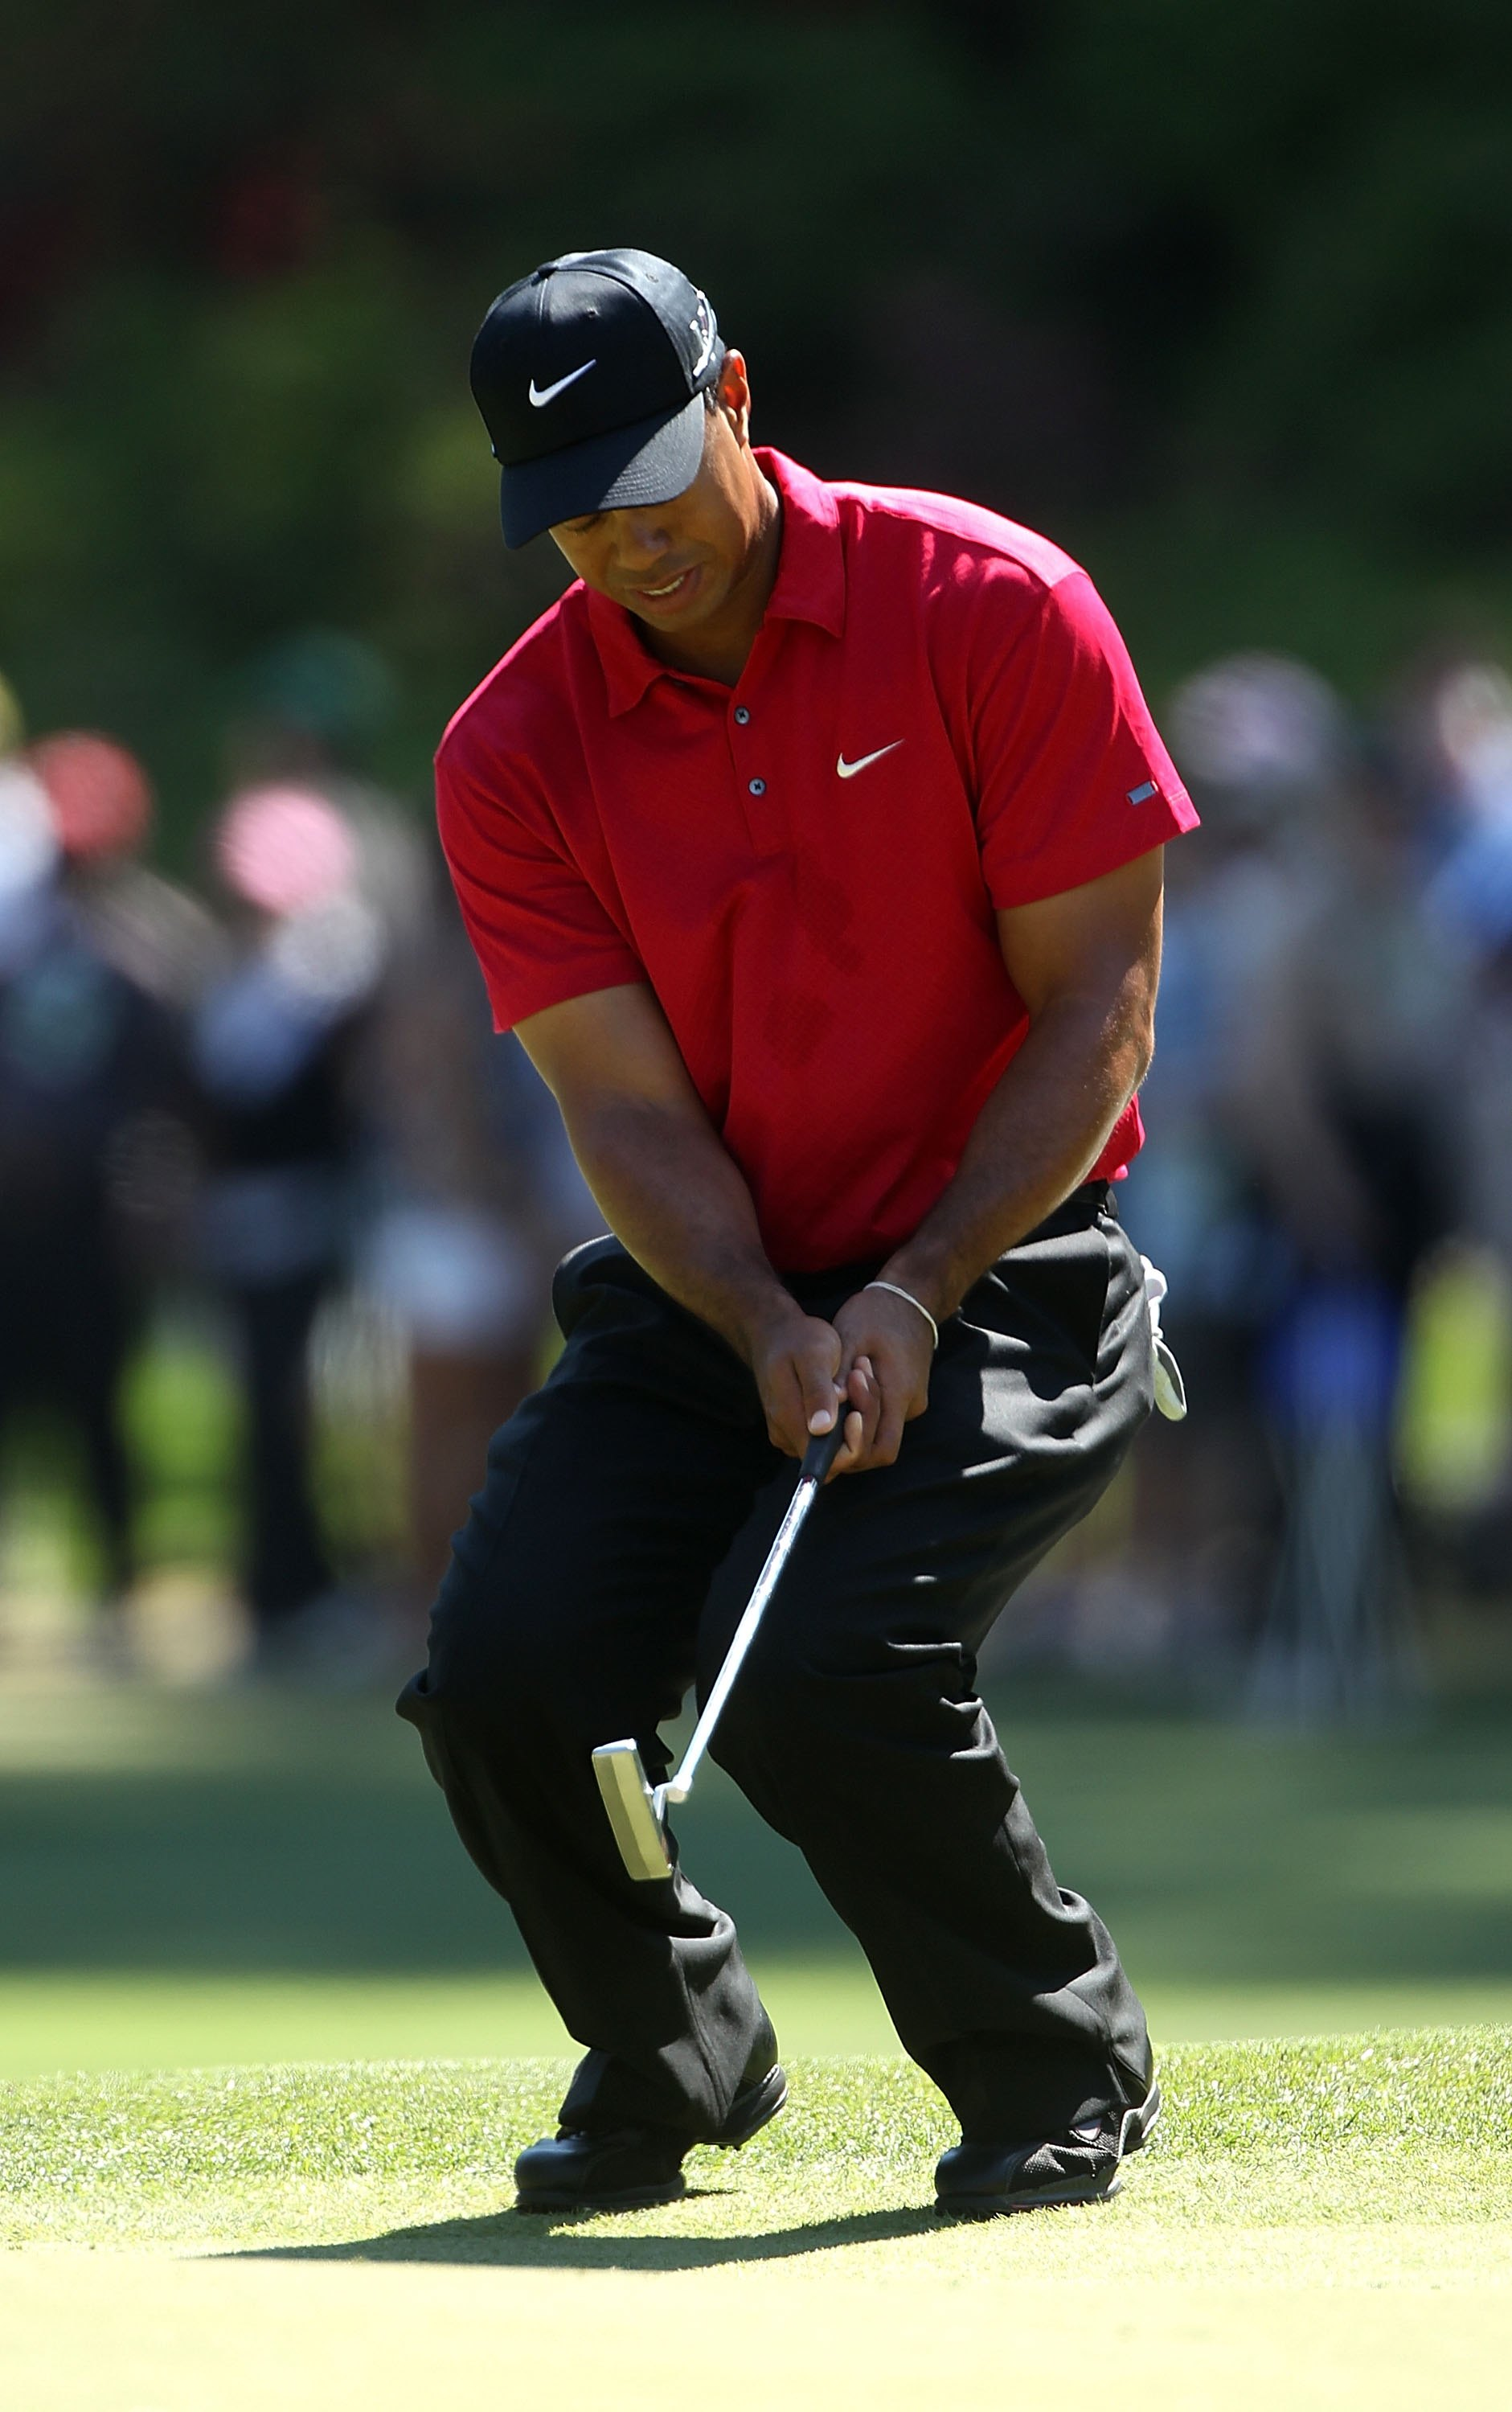 AUGUSTA, GA - APRIL 11:  Tiger Woods during the final round of the 2010 Masters Tournament at Augusta National Golf Club on April 11, 2010 in Augusta, Georgia.  (Photo by Streeter Lecka/Getty Images for Golf Week)